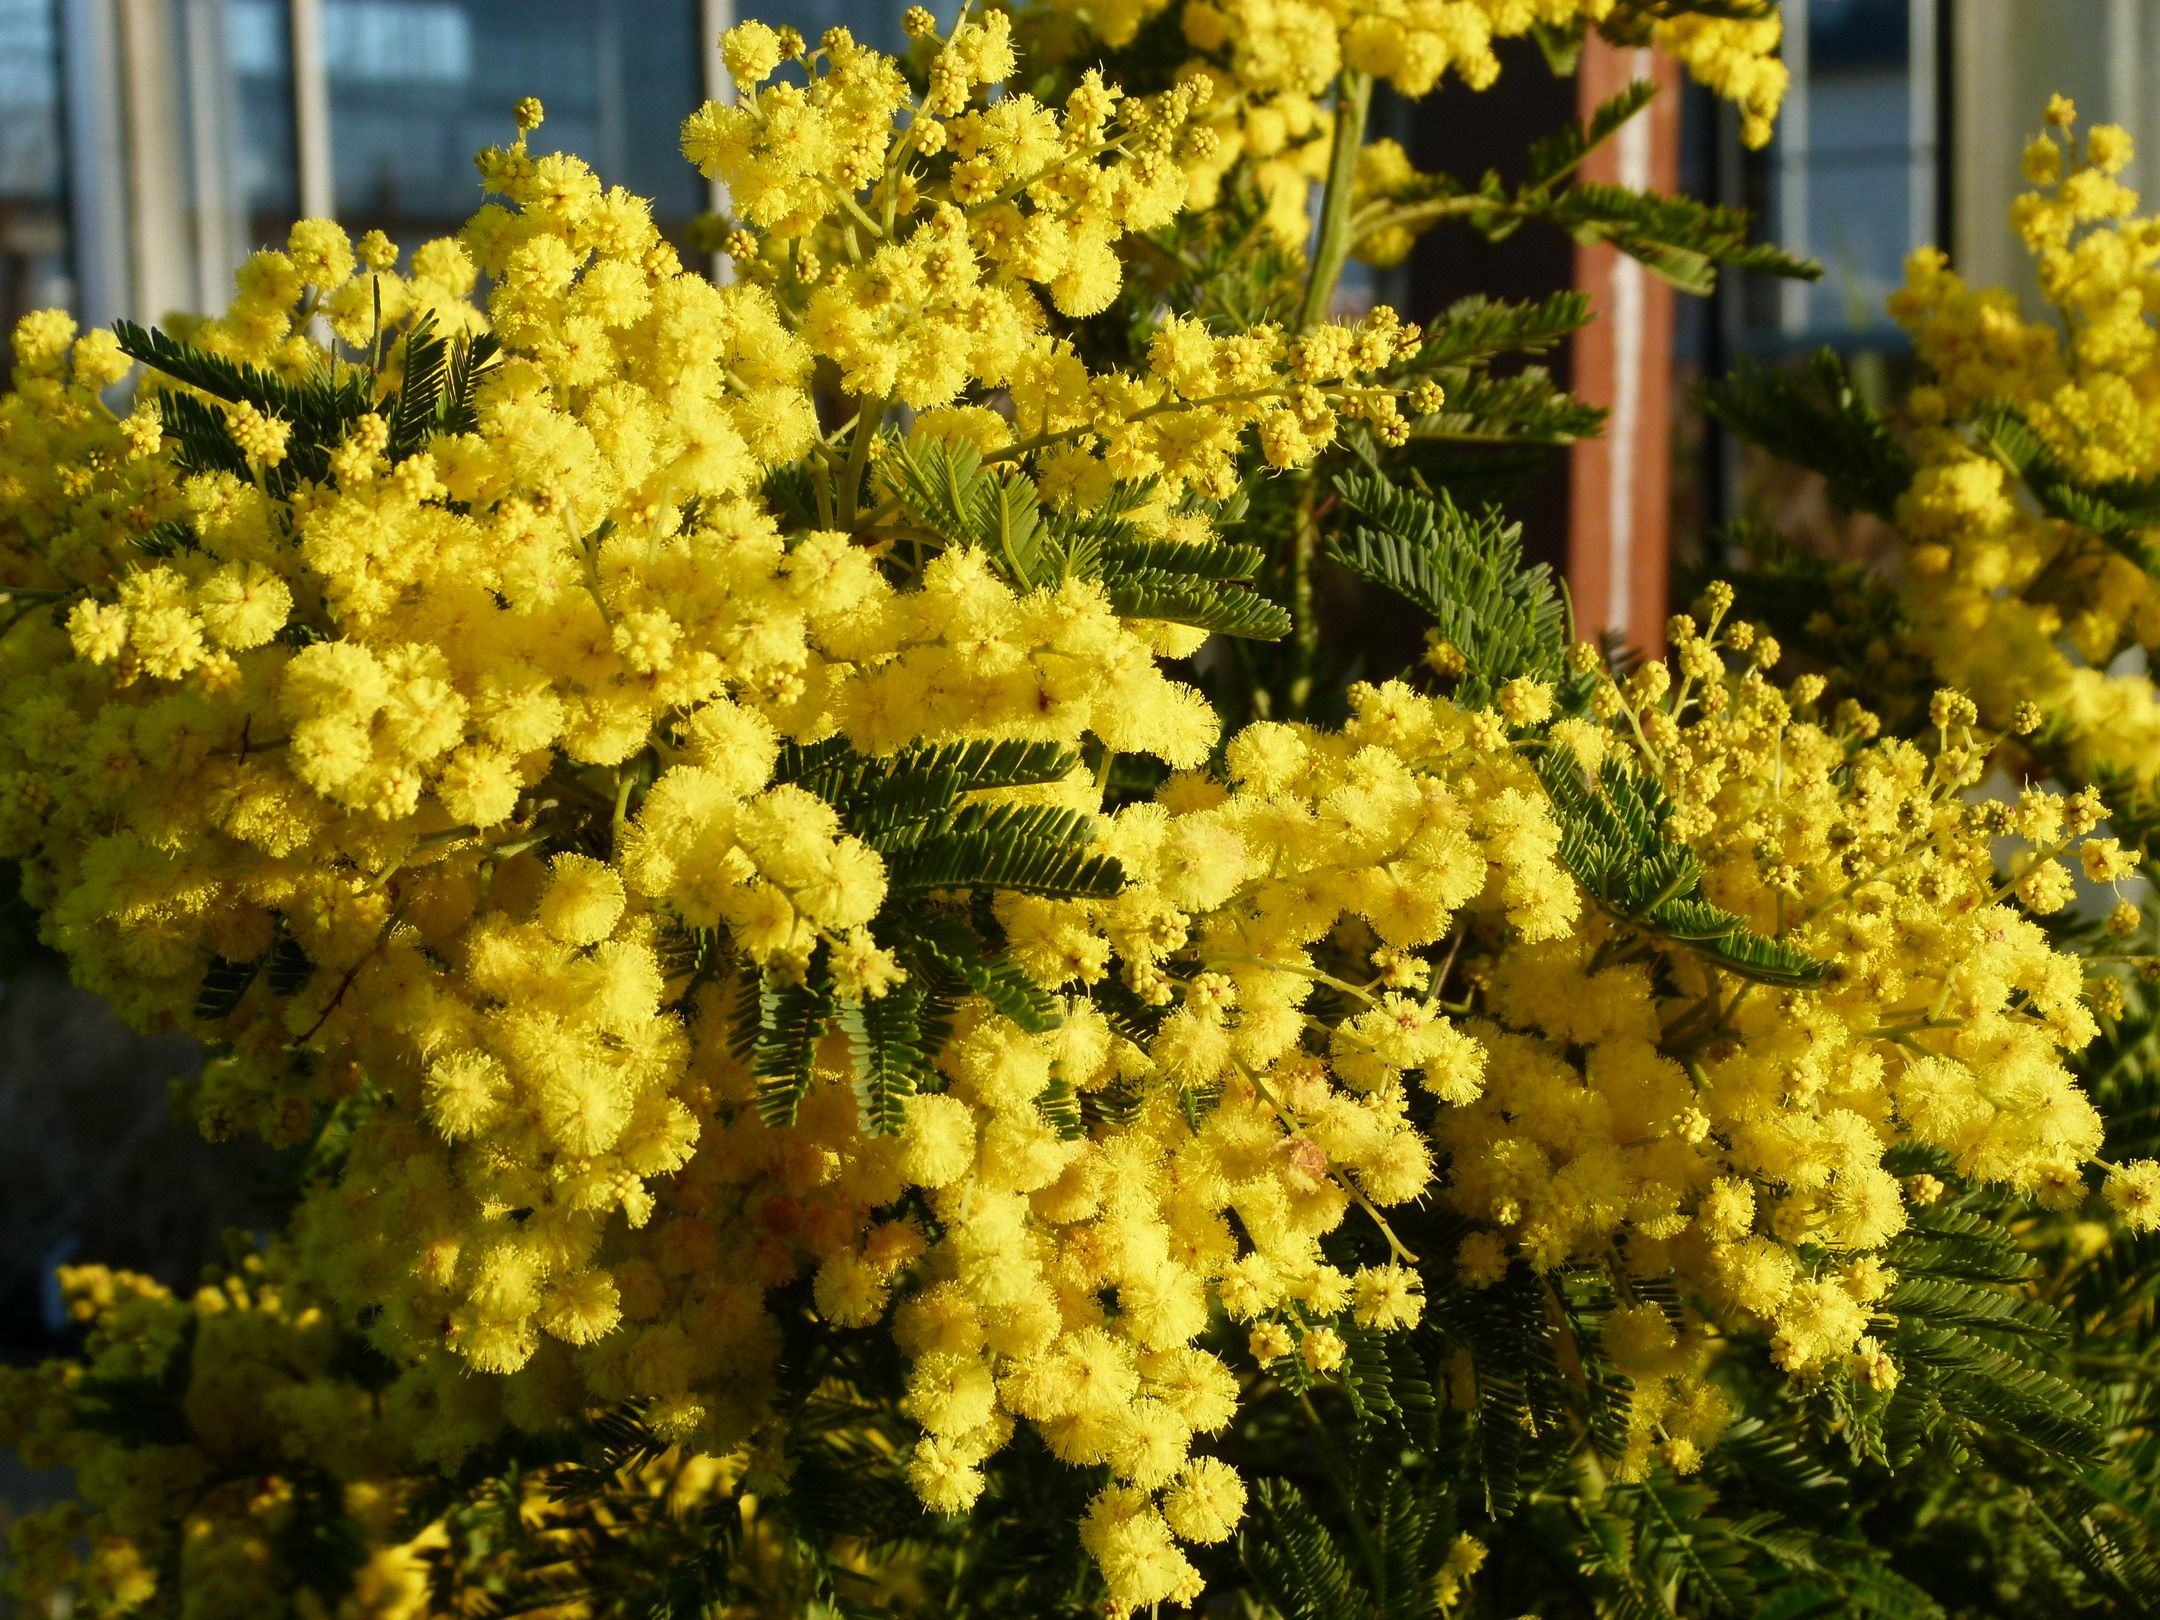 Acacia Dealbata Gaulois Astier Mimosa Is A Compact Form Of